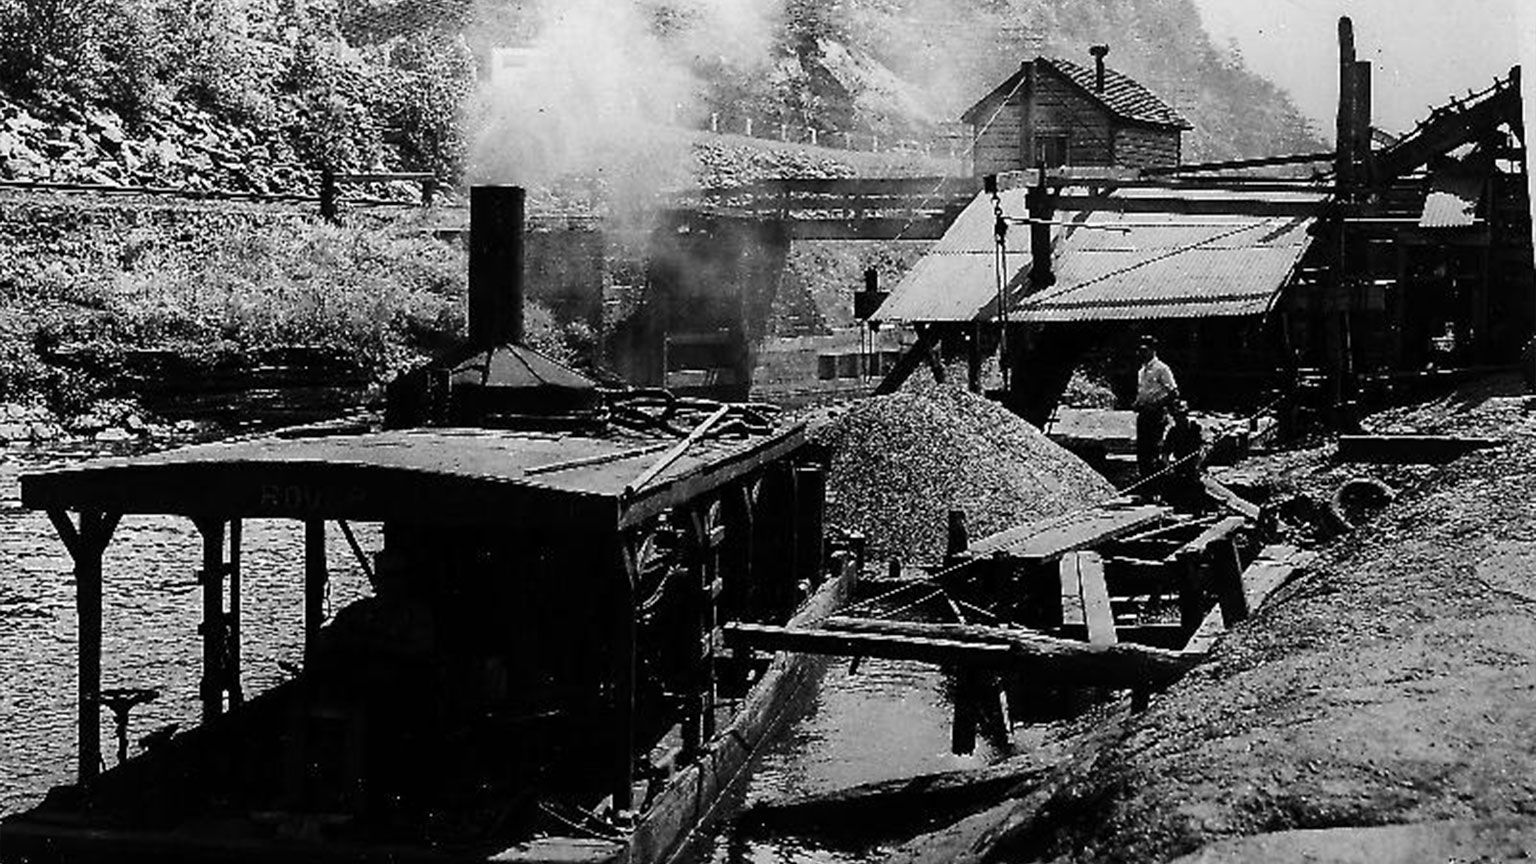 This was part of the process the coal went through as it made its way from the coal mines into people's houses.